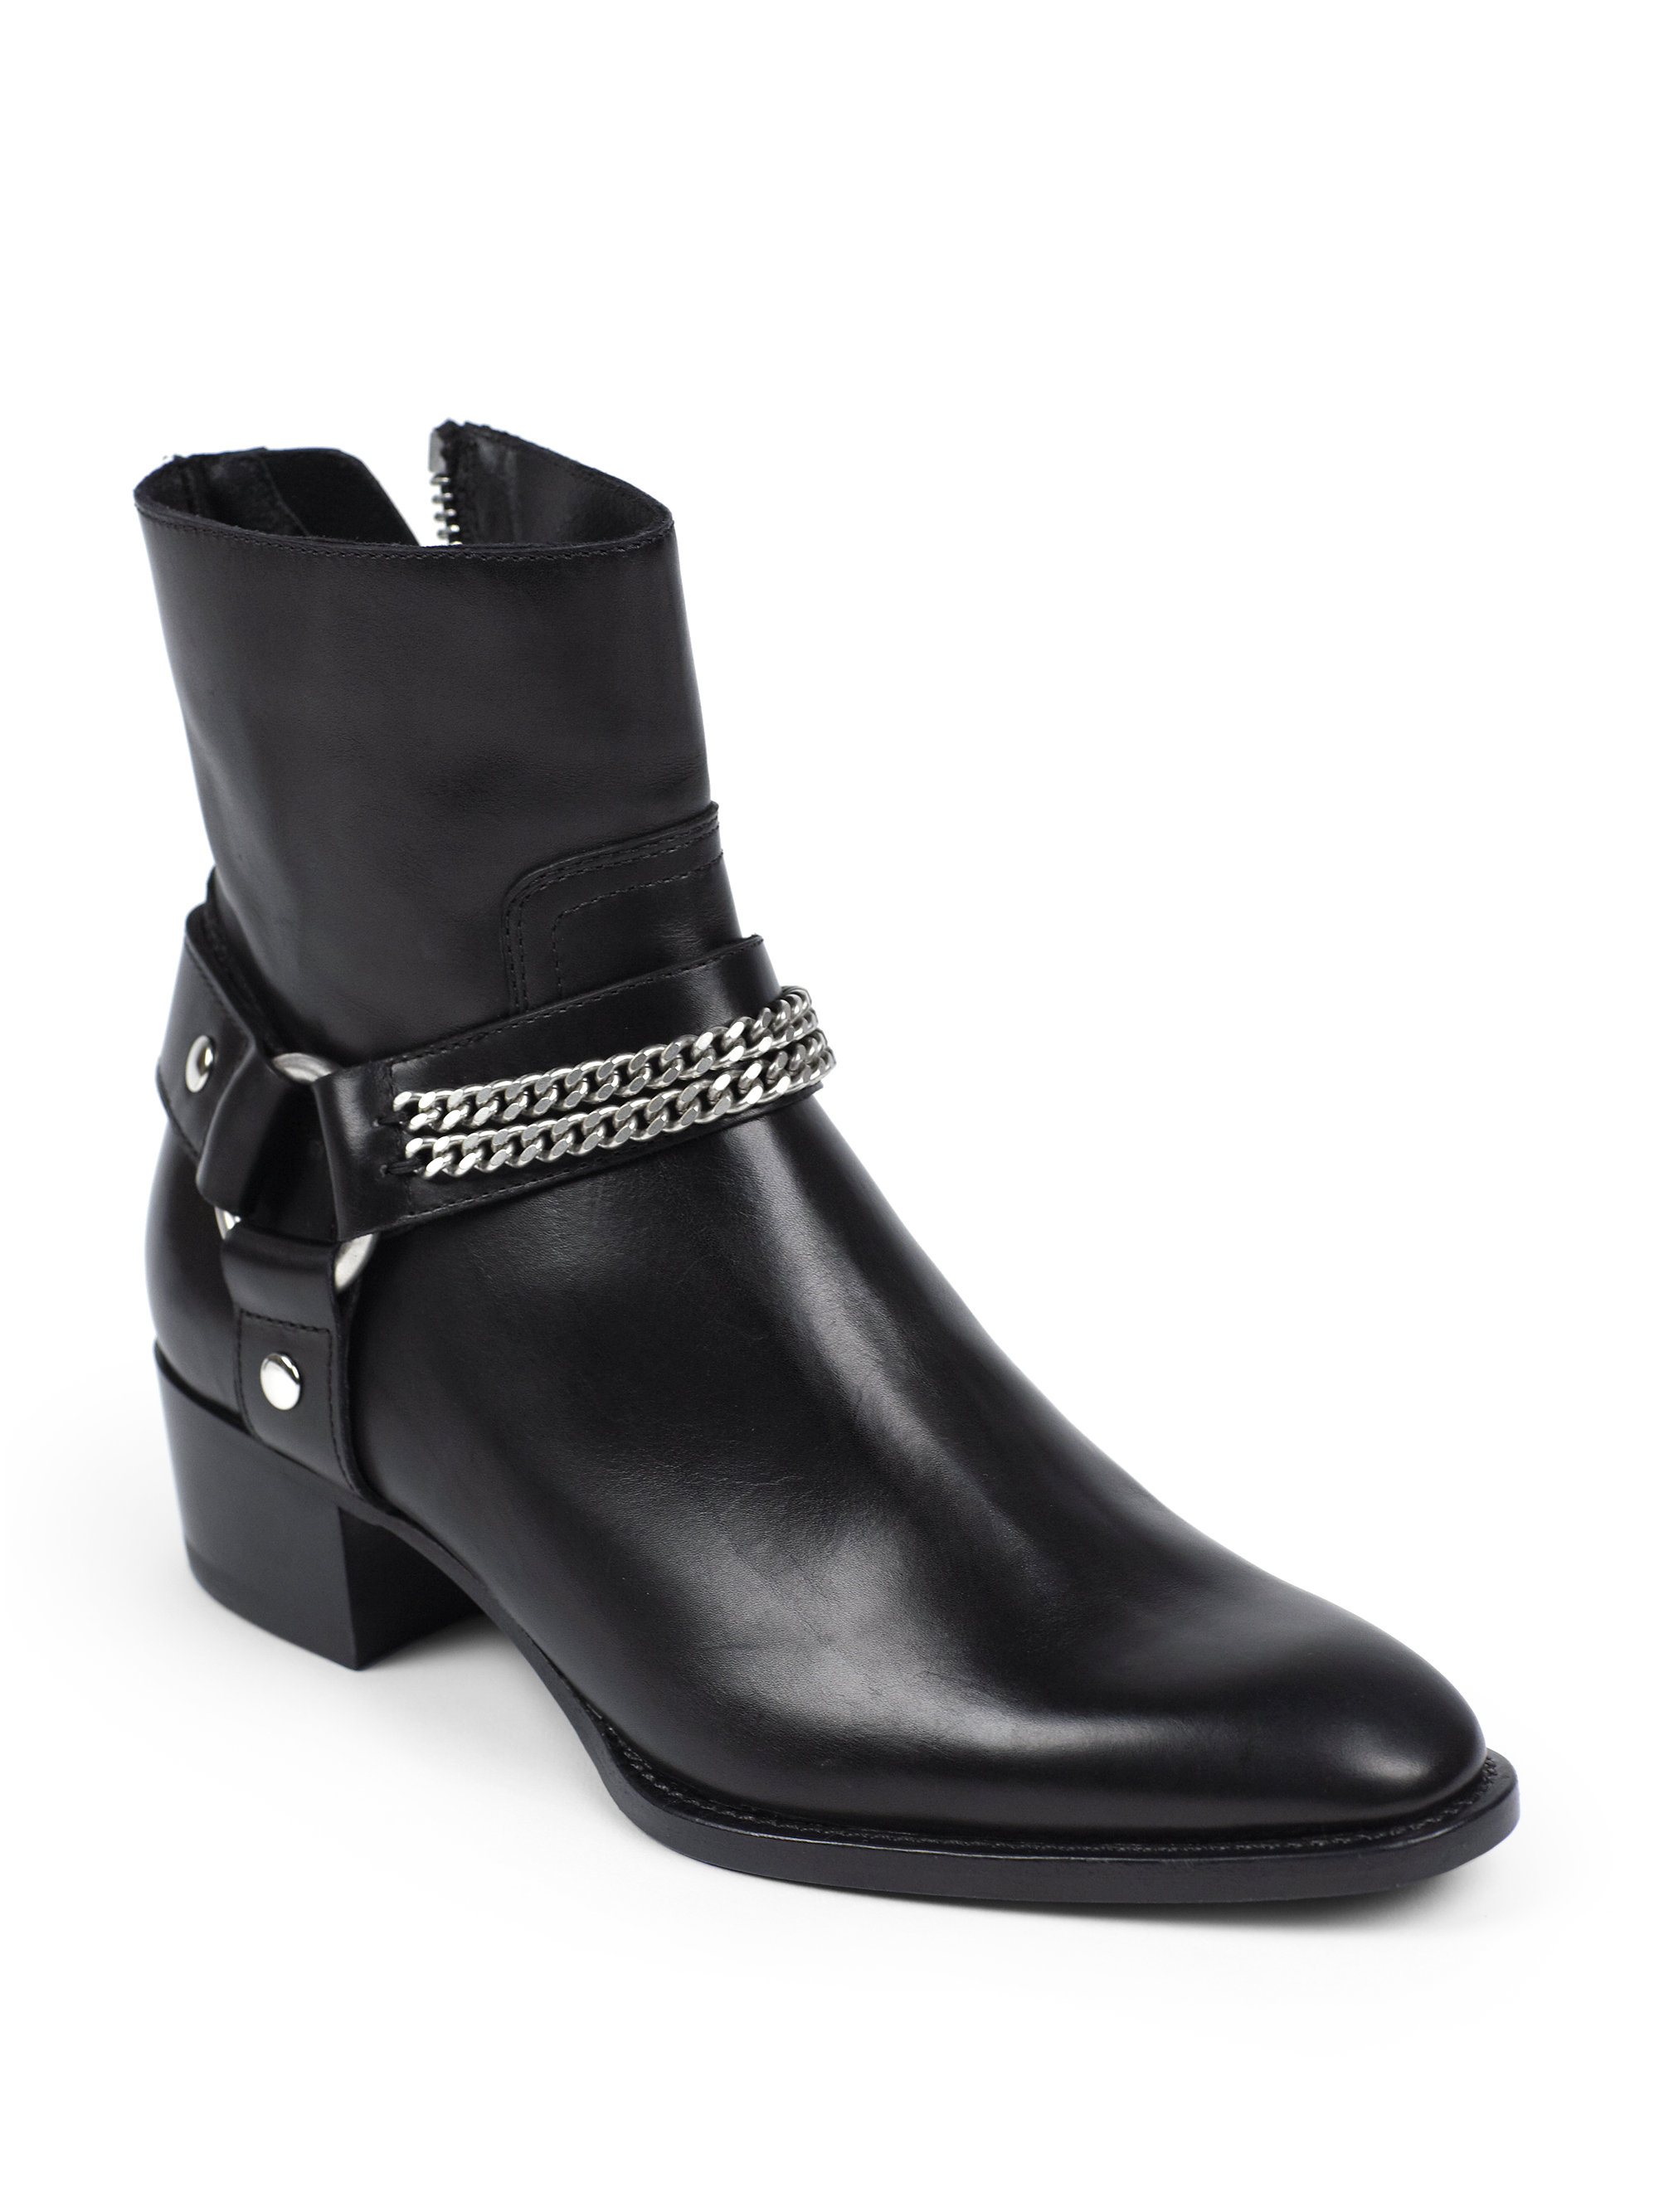 Lyst - Saint Laurent Rock Chelsea Leather Chain Harness Ankle Boots ... 10904f98d